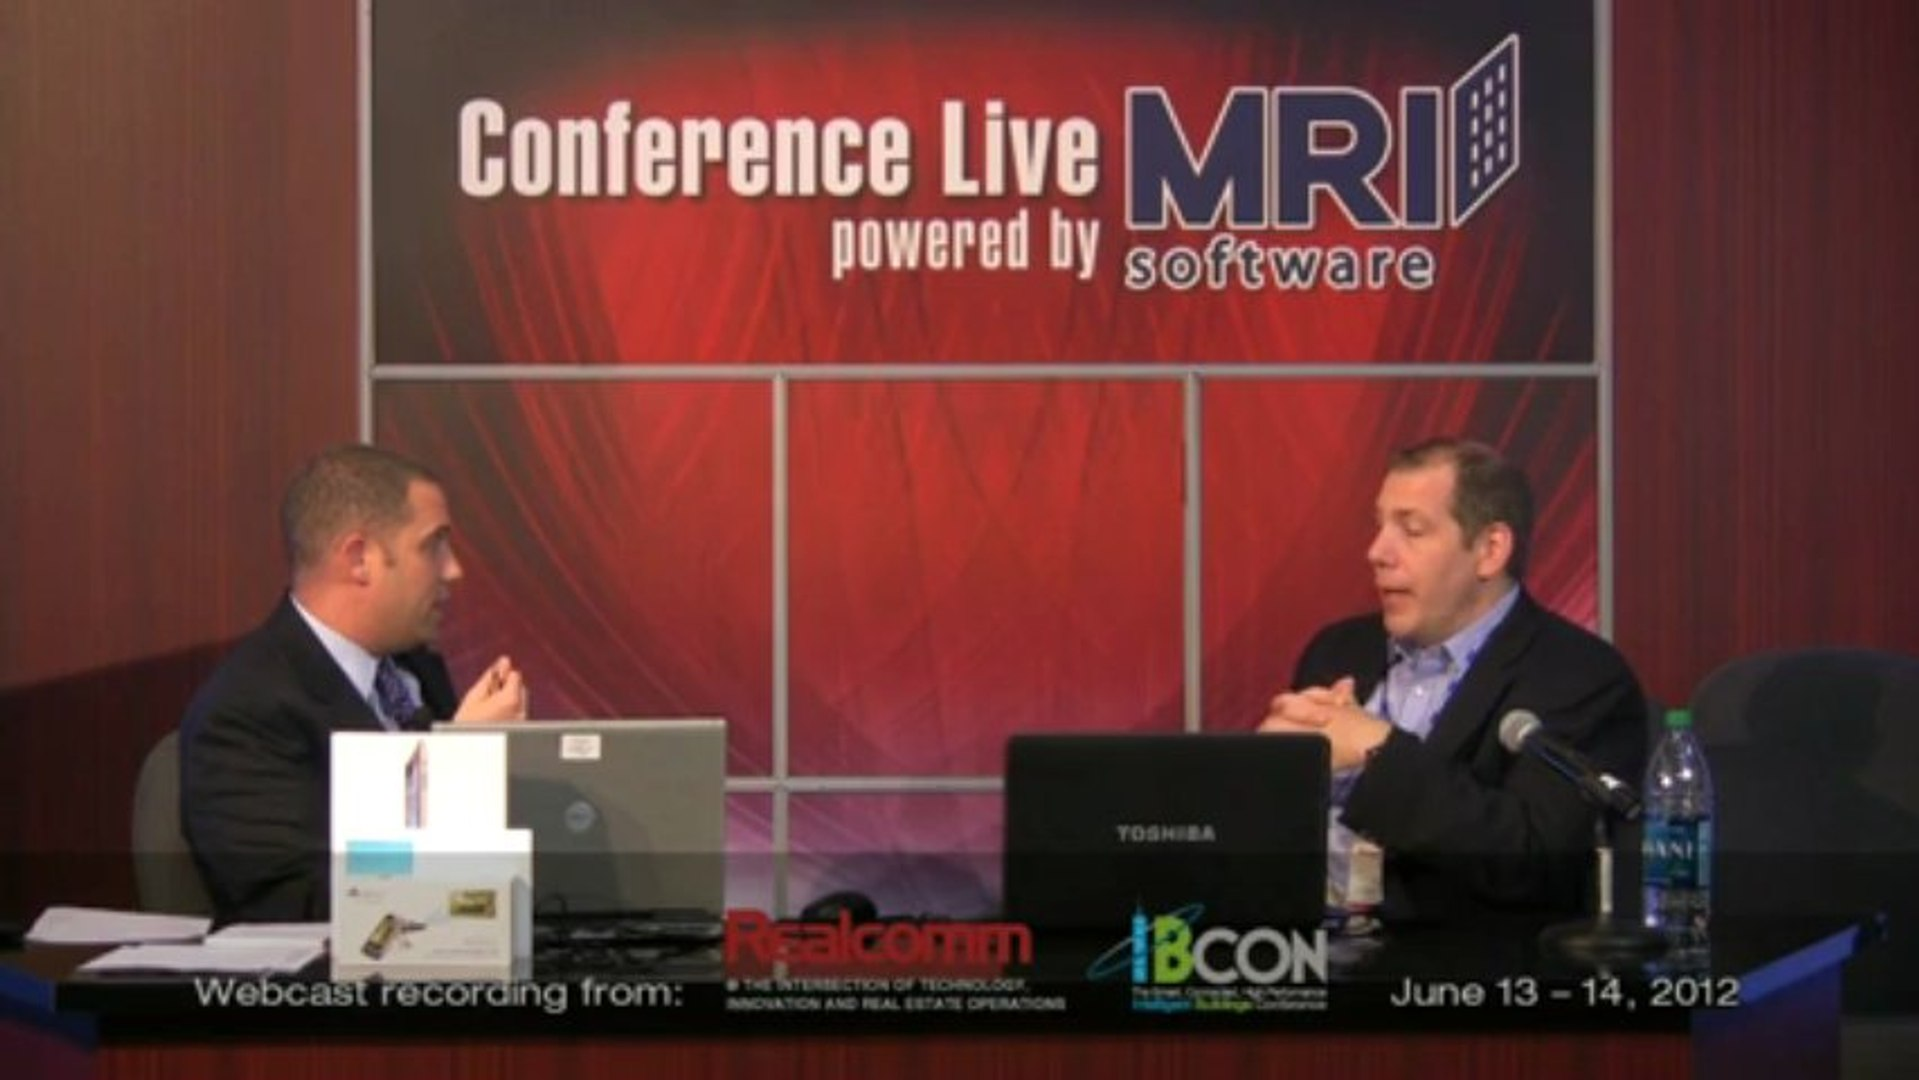 MRI Improves Budgeting and Forecasting Software Program - Realcomm and MRI Software